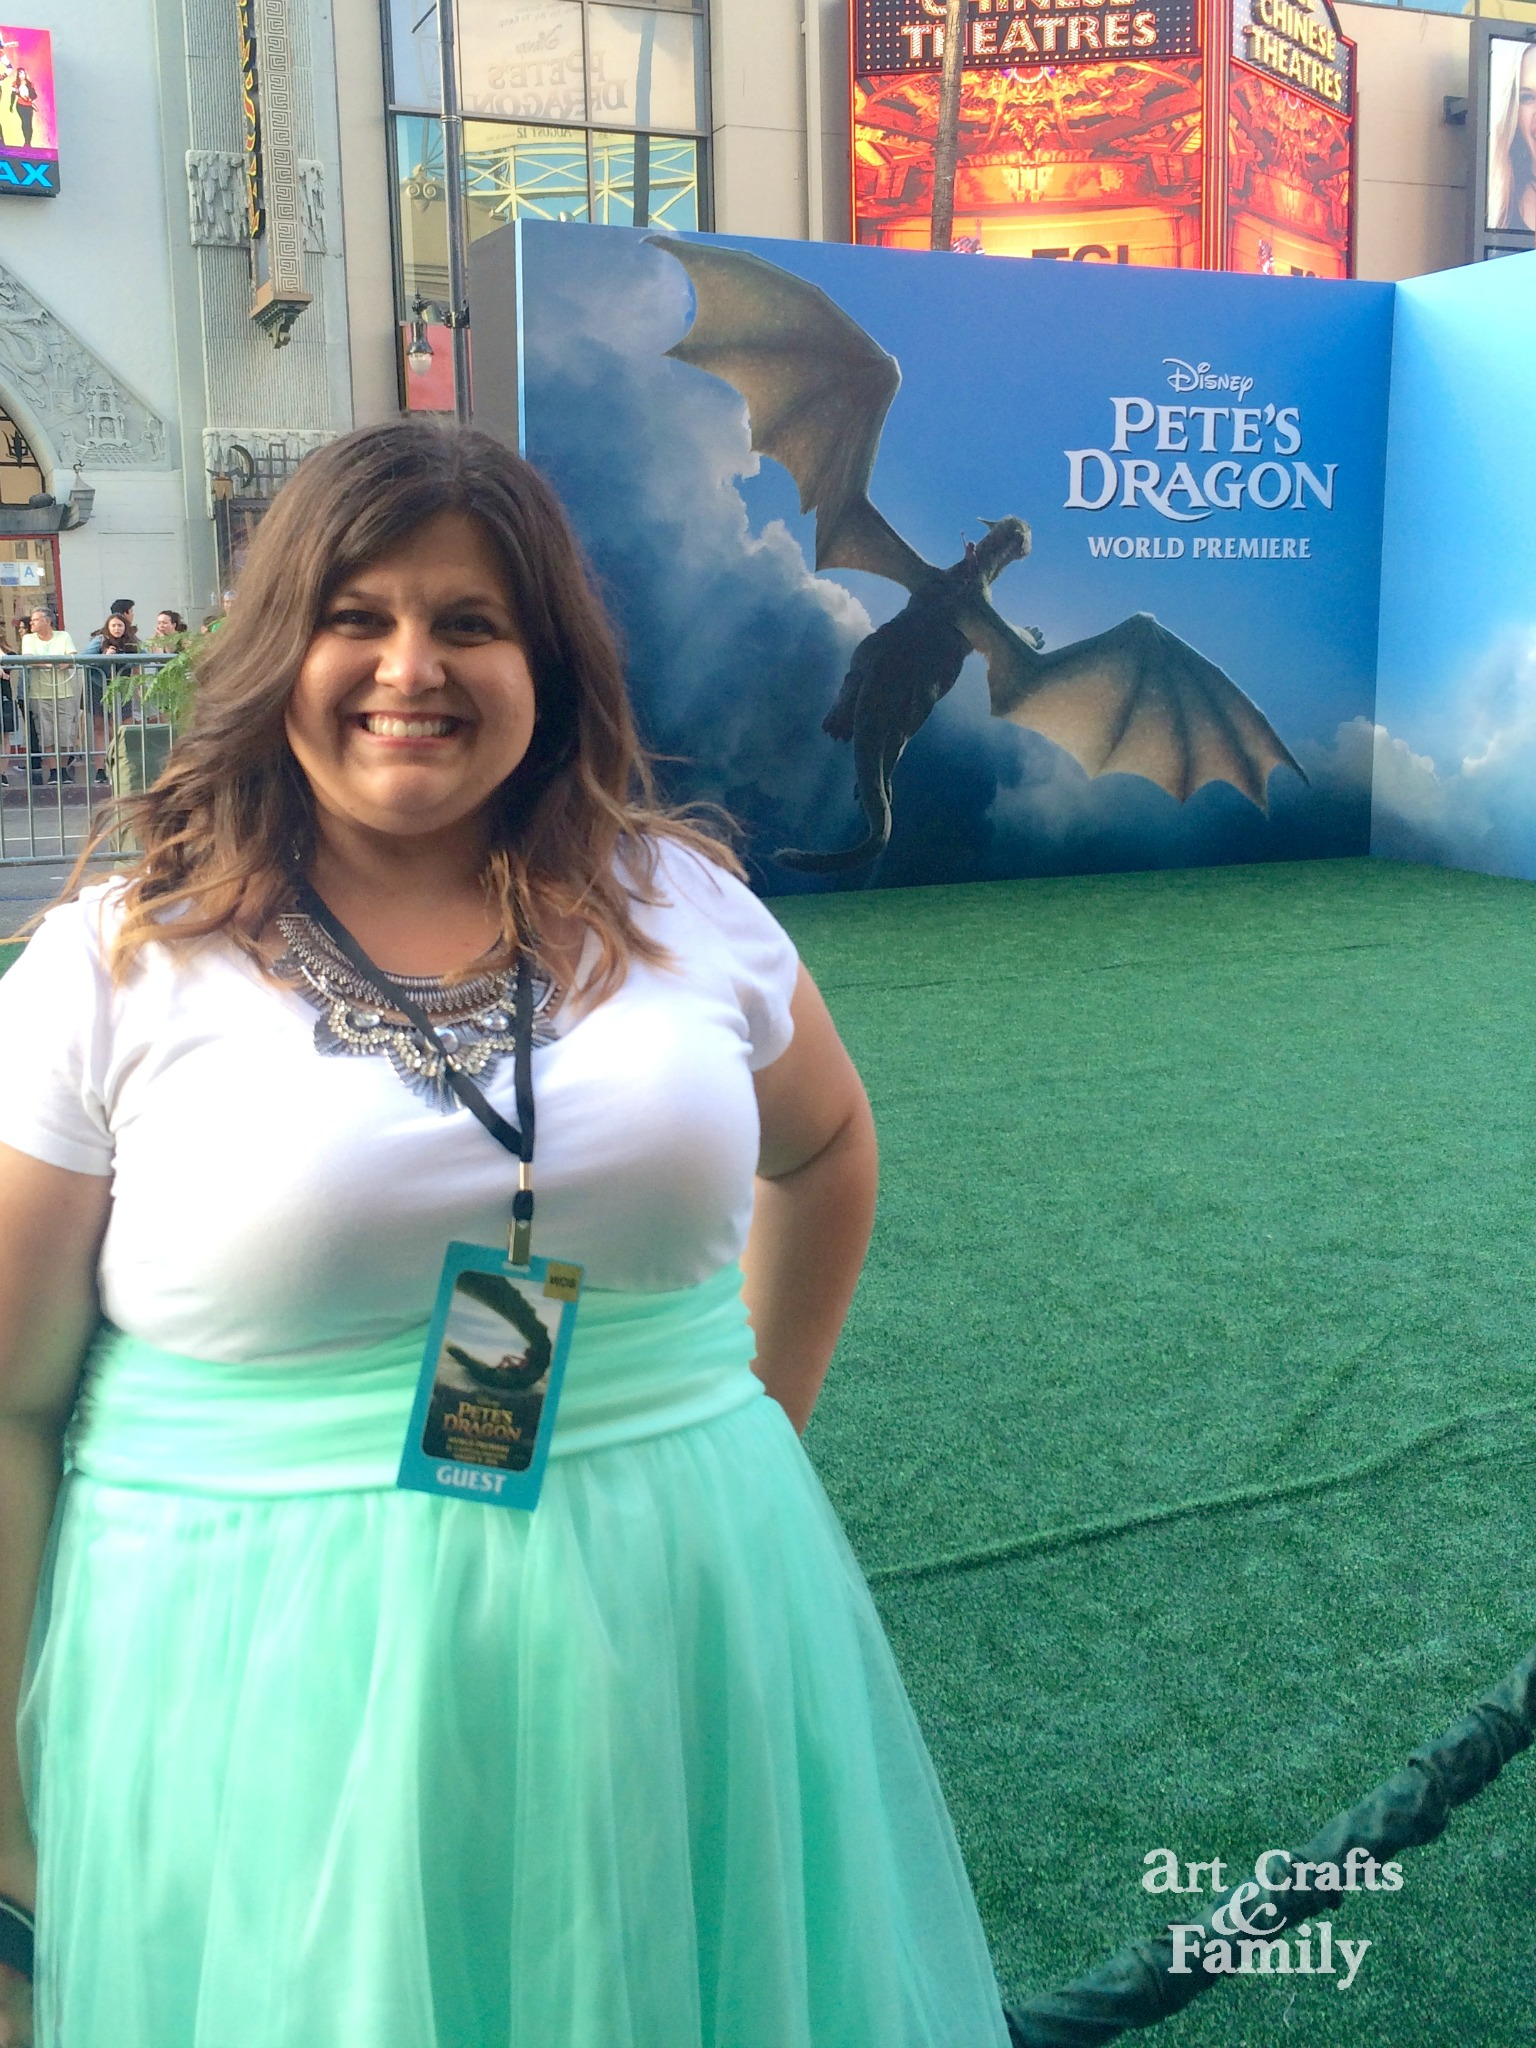 Pete's Dragon Red Carpet Premiere in Hollywood!